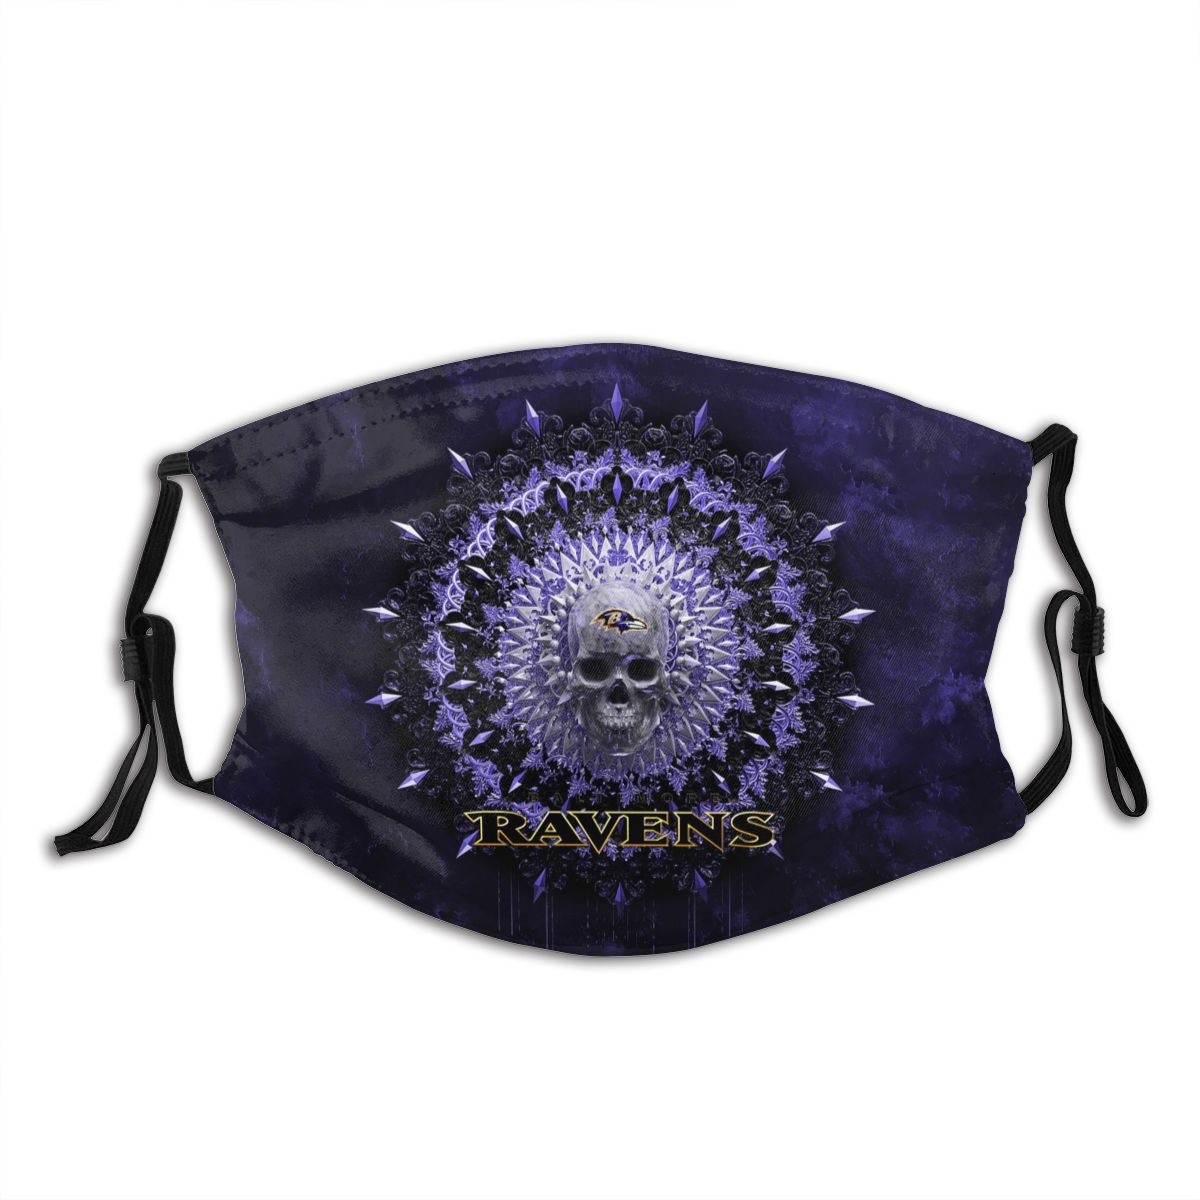 Ravens Adult Cloth Face Covering With Filter